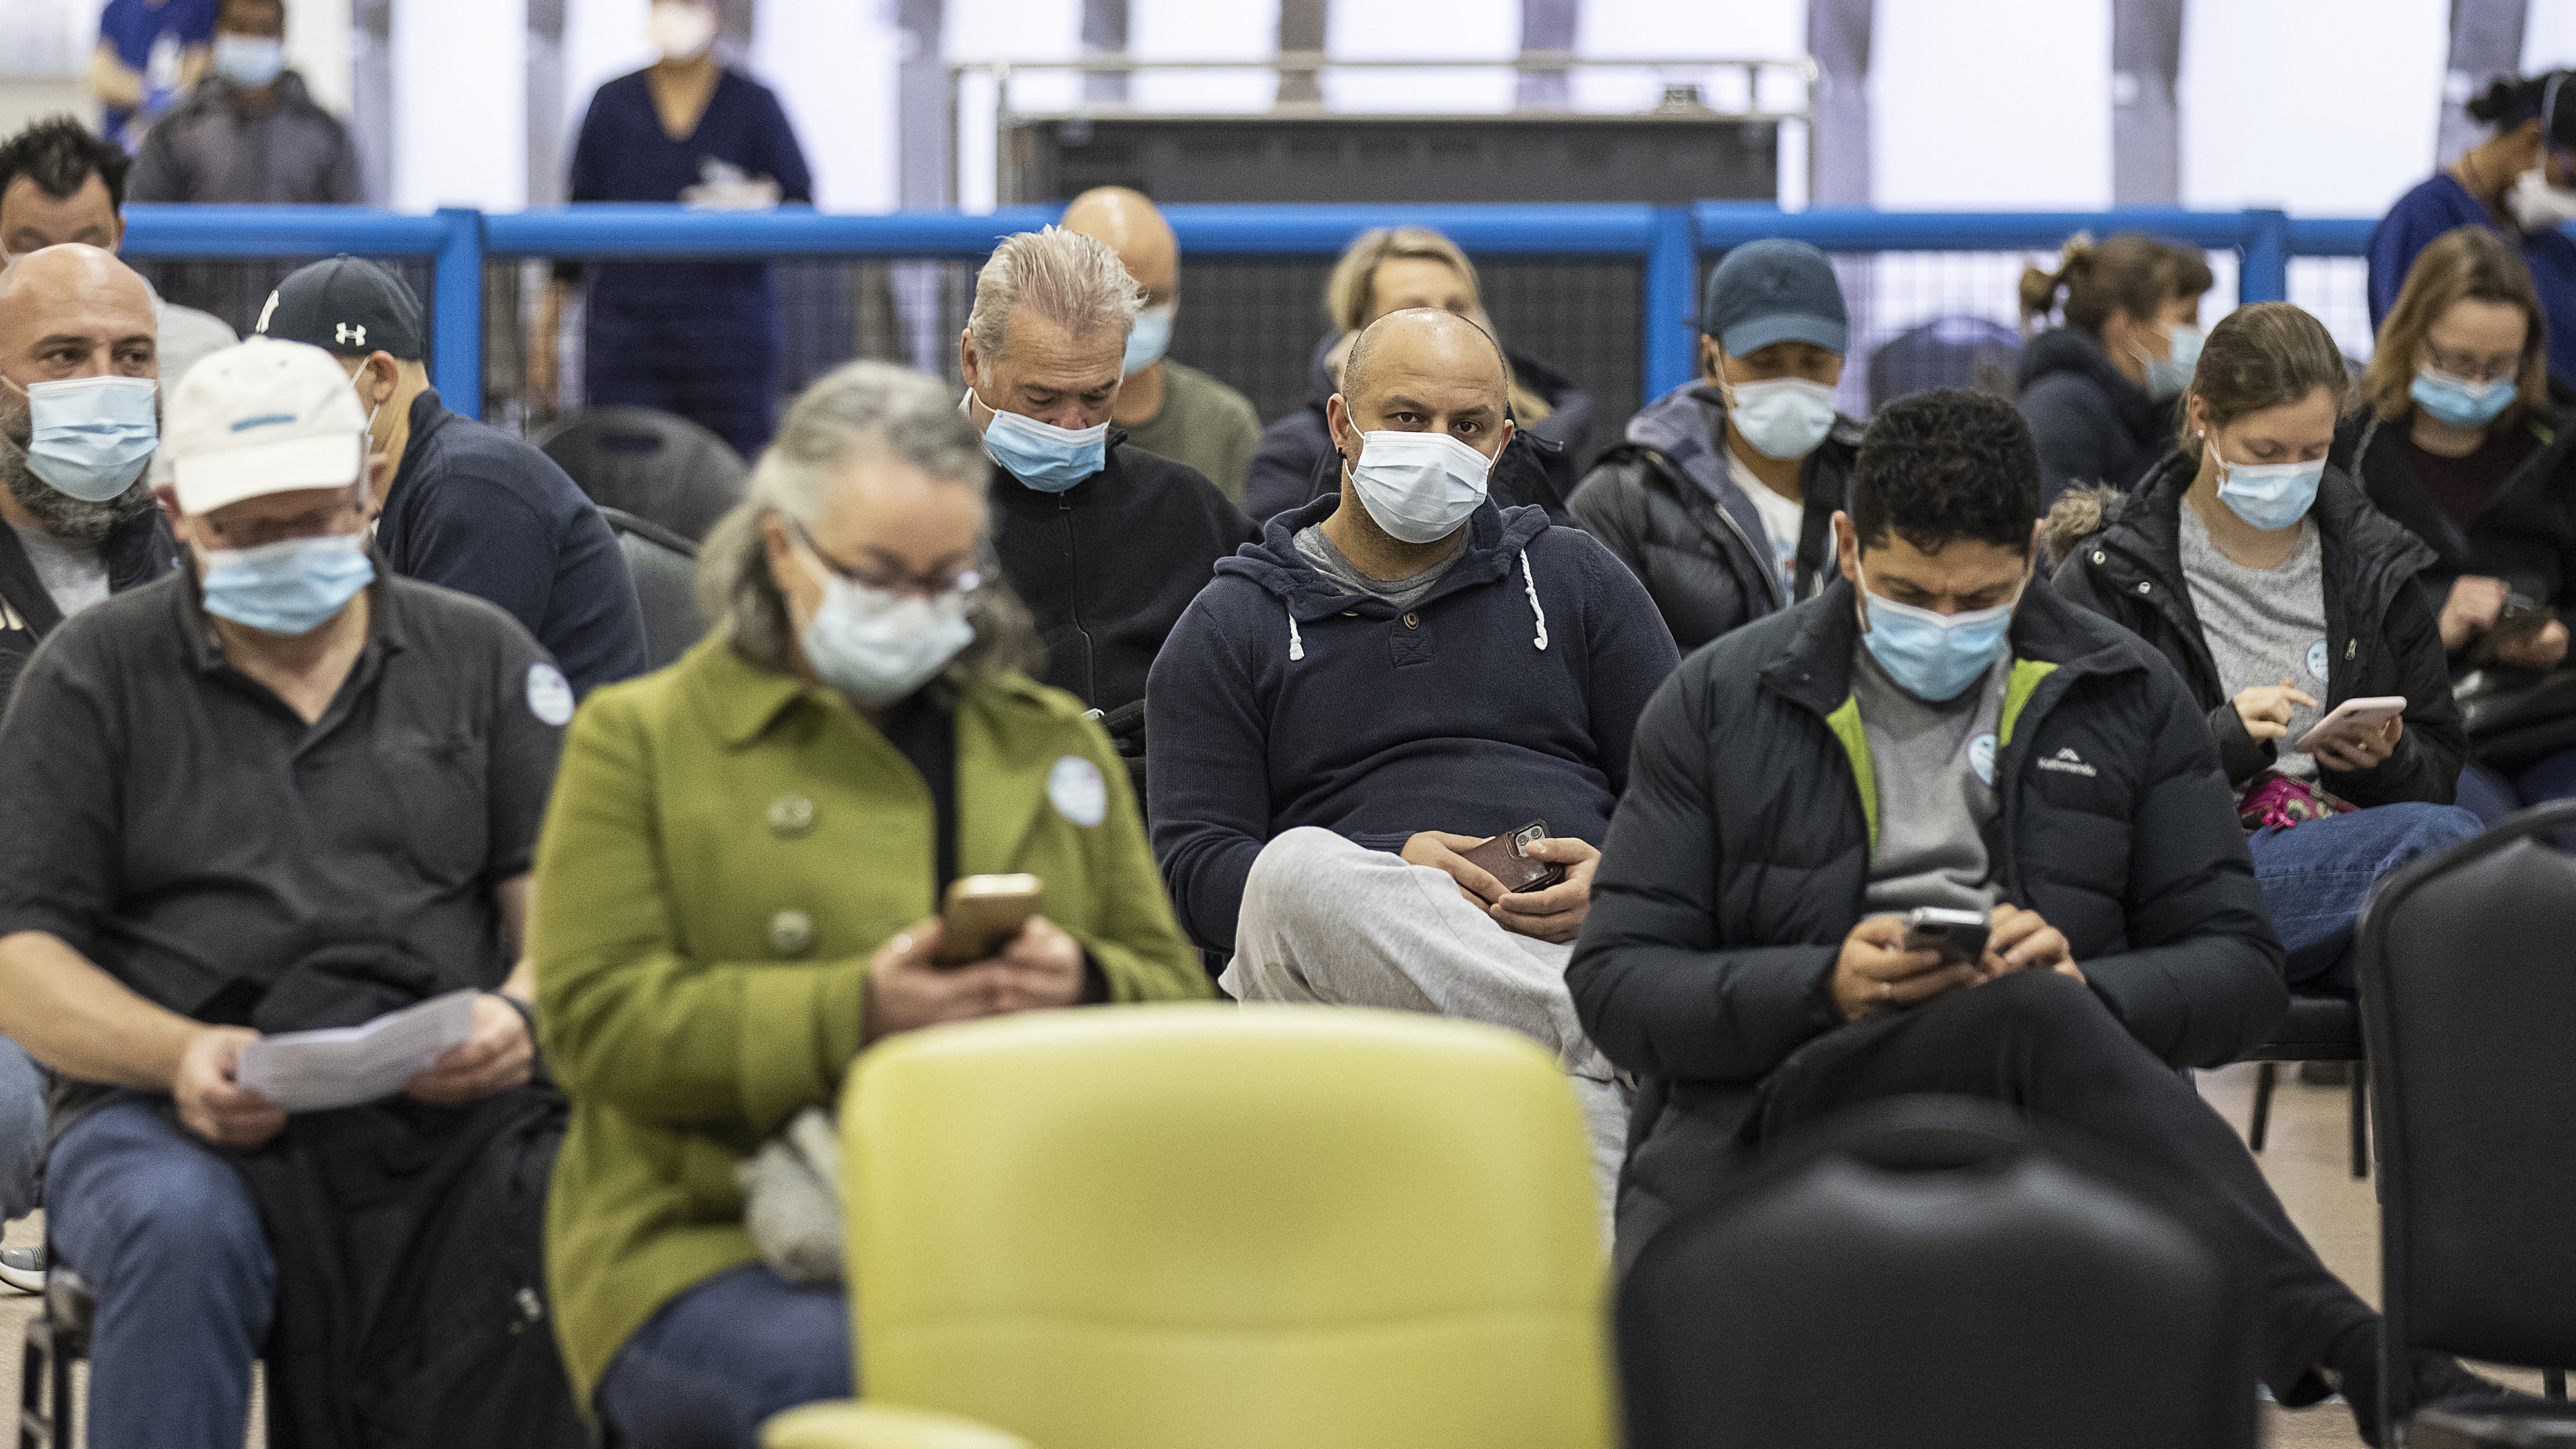 People wait for 15 minutes after receiving a COVID-19 vaccine at the Melbourne Showgrounds COVID-19 Vaccination Centre.